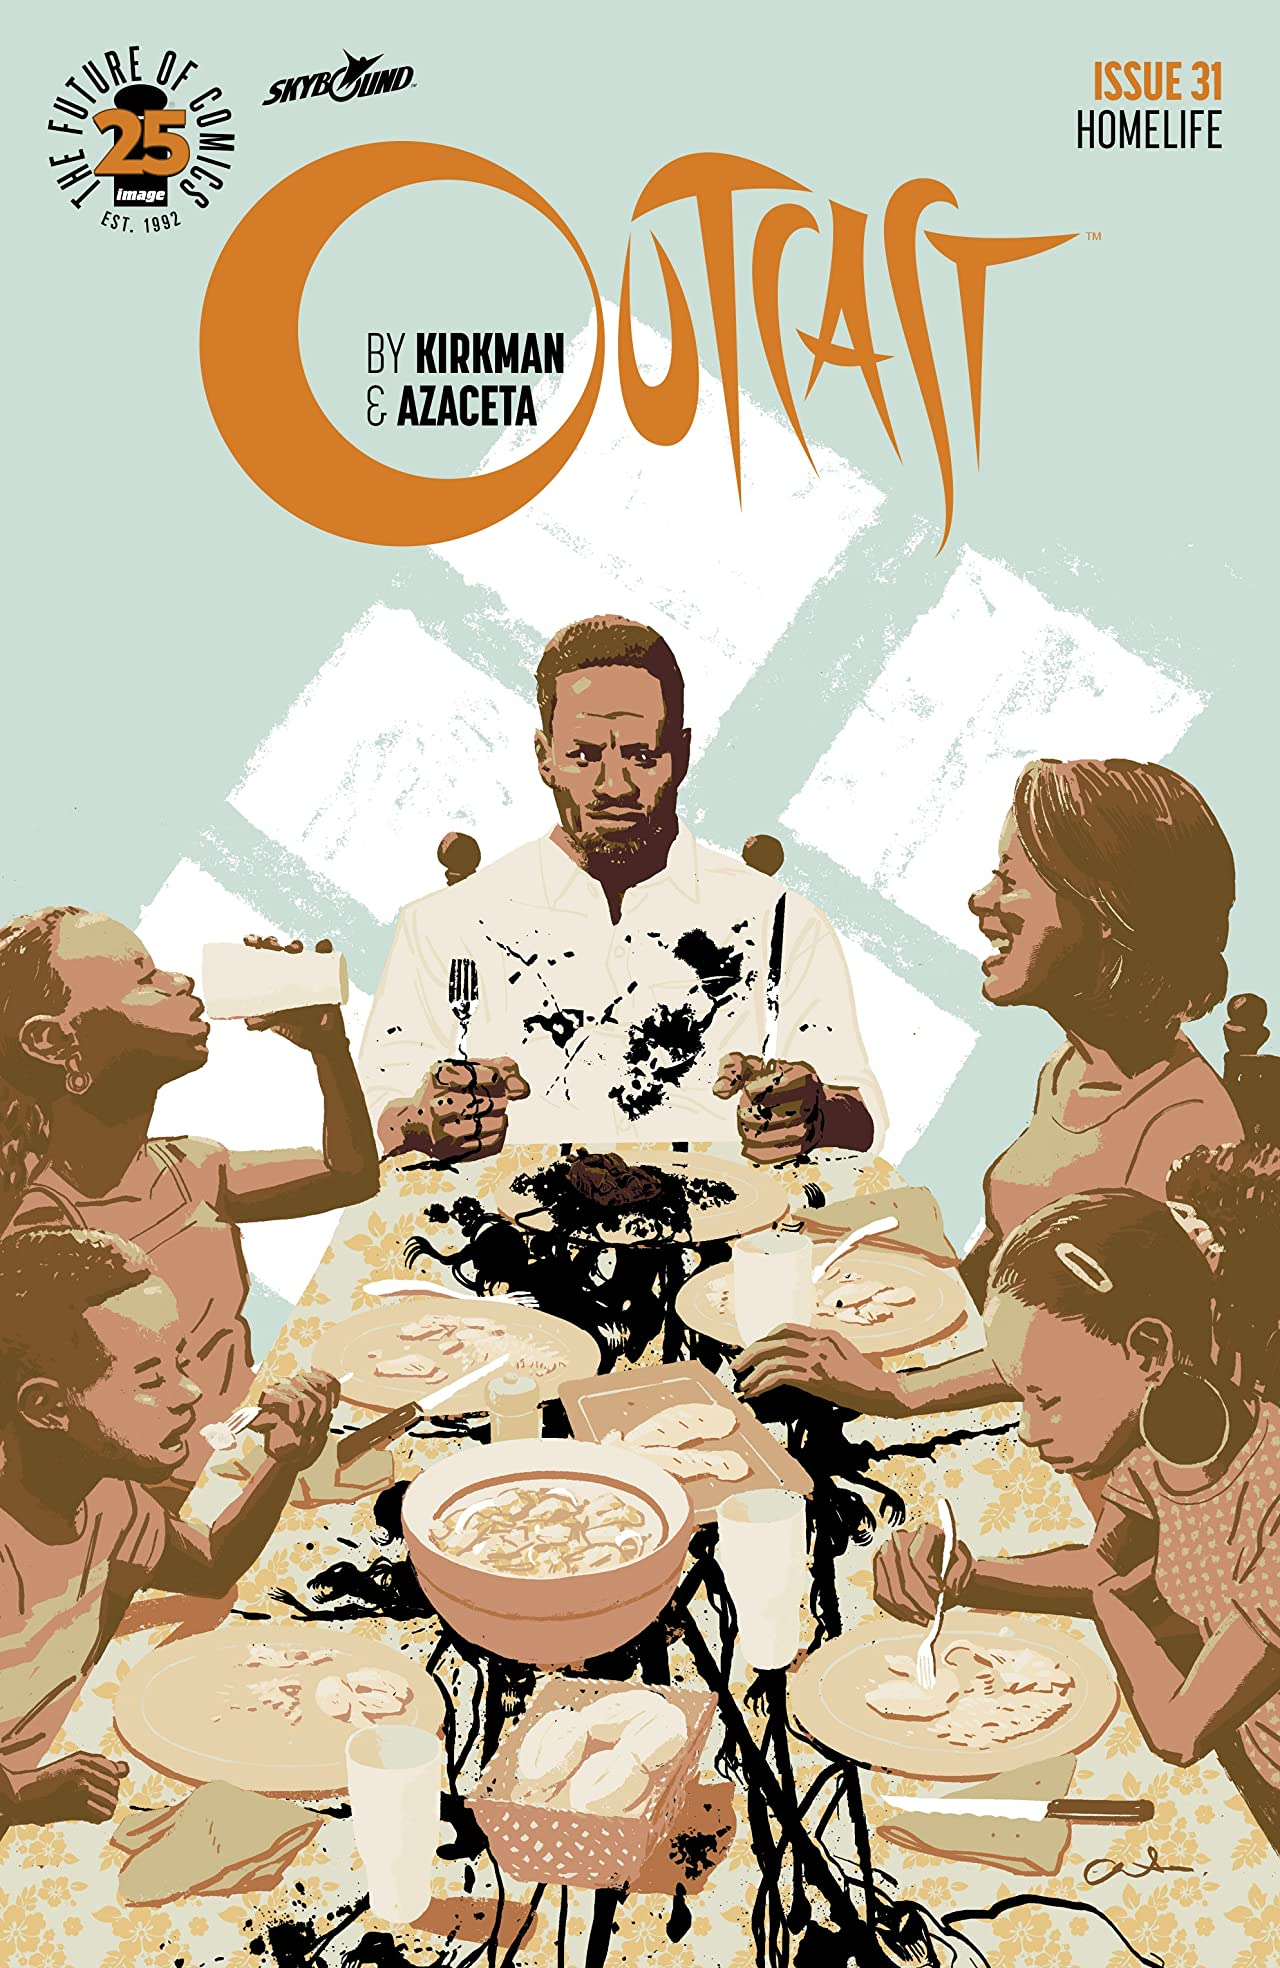 Outcast By Kirkman & Azaceta #31